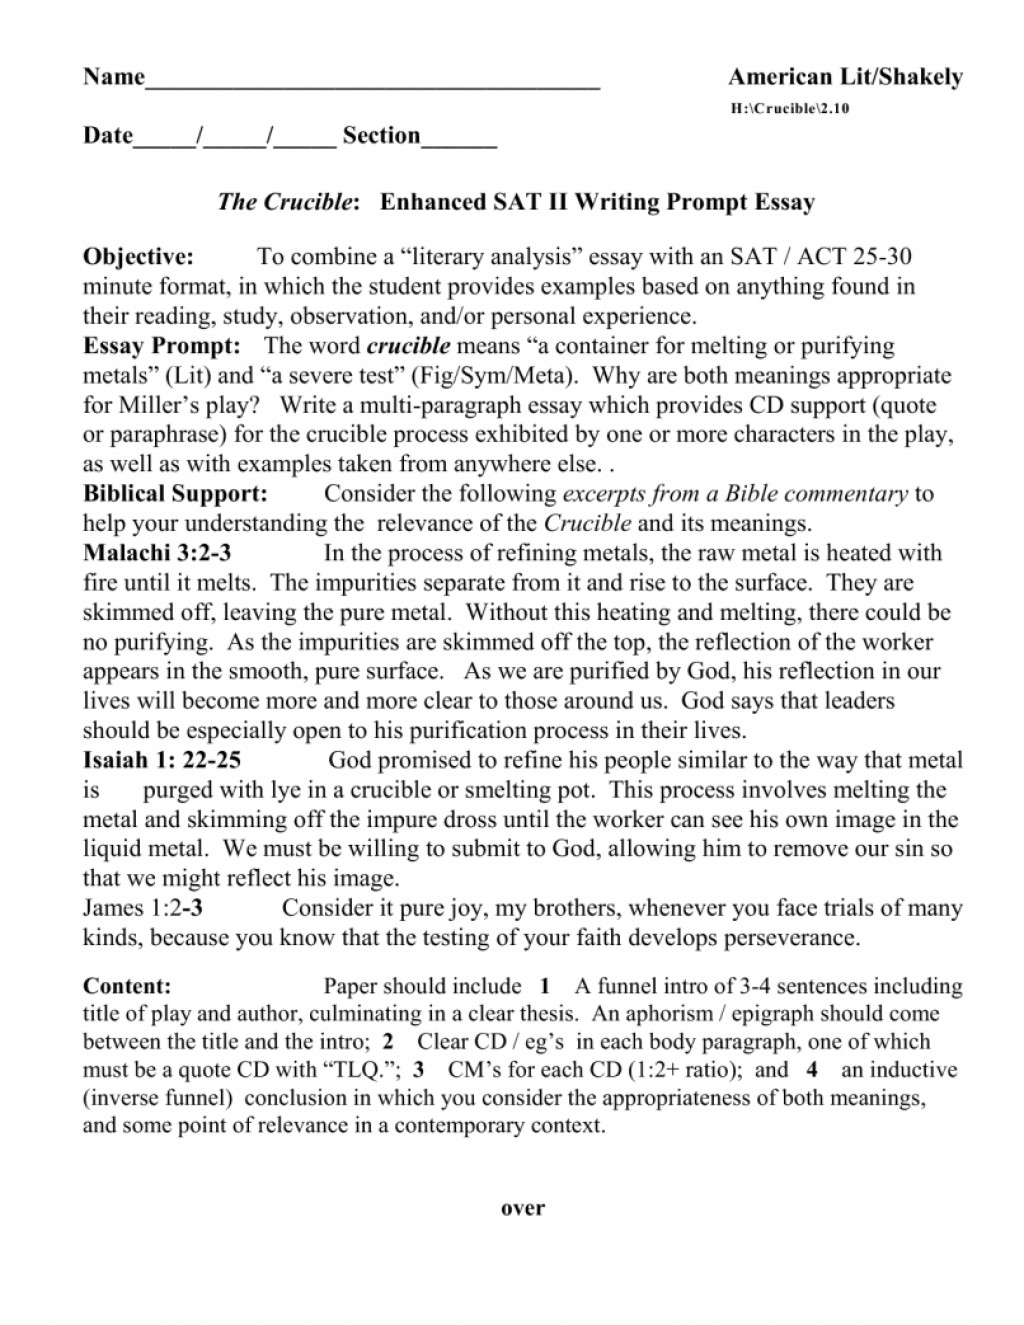 004 Ssat Essay Examples Poemdoc Or Writing Sample Prompts Example Sat Essays How To Get Perfect L Prompt Imposing Scored 12 Pdf Large